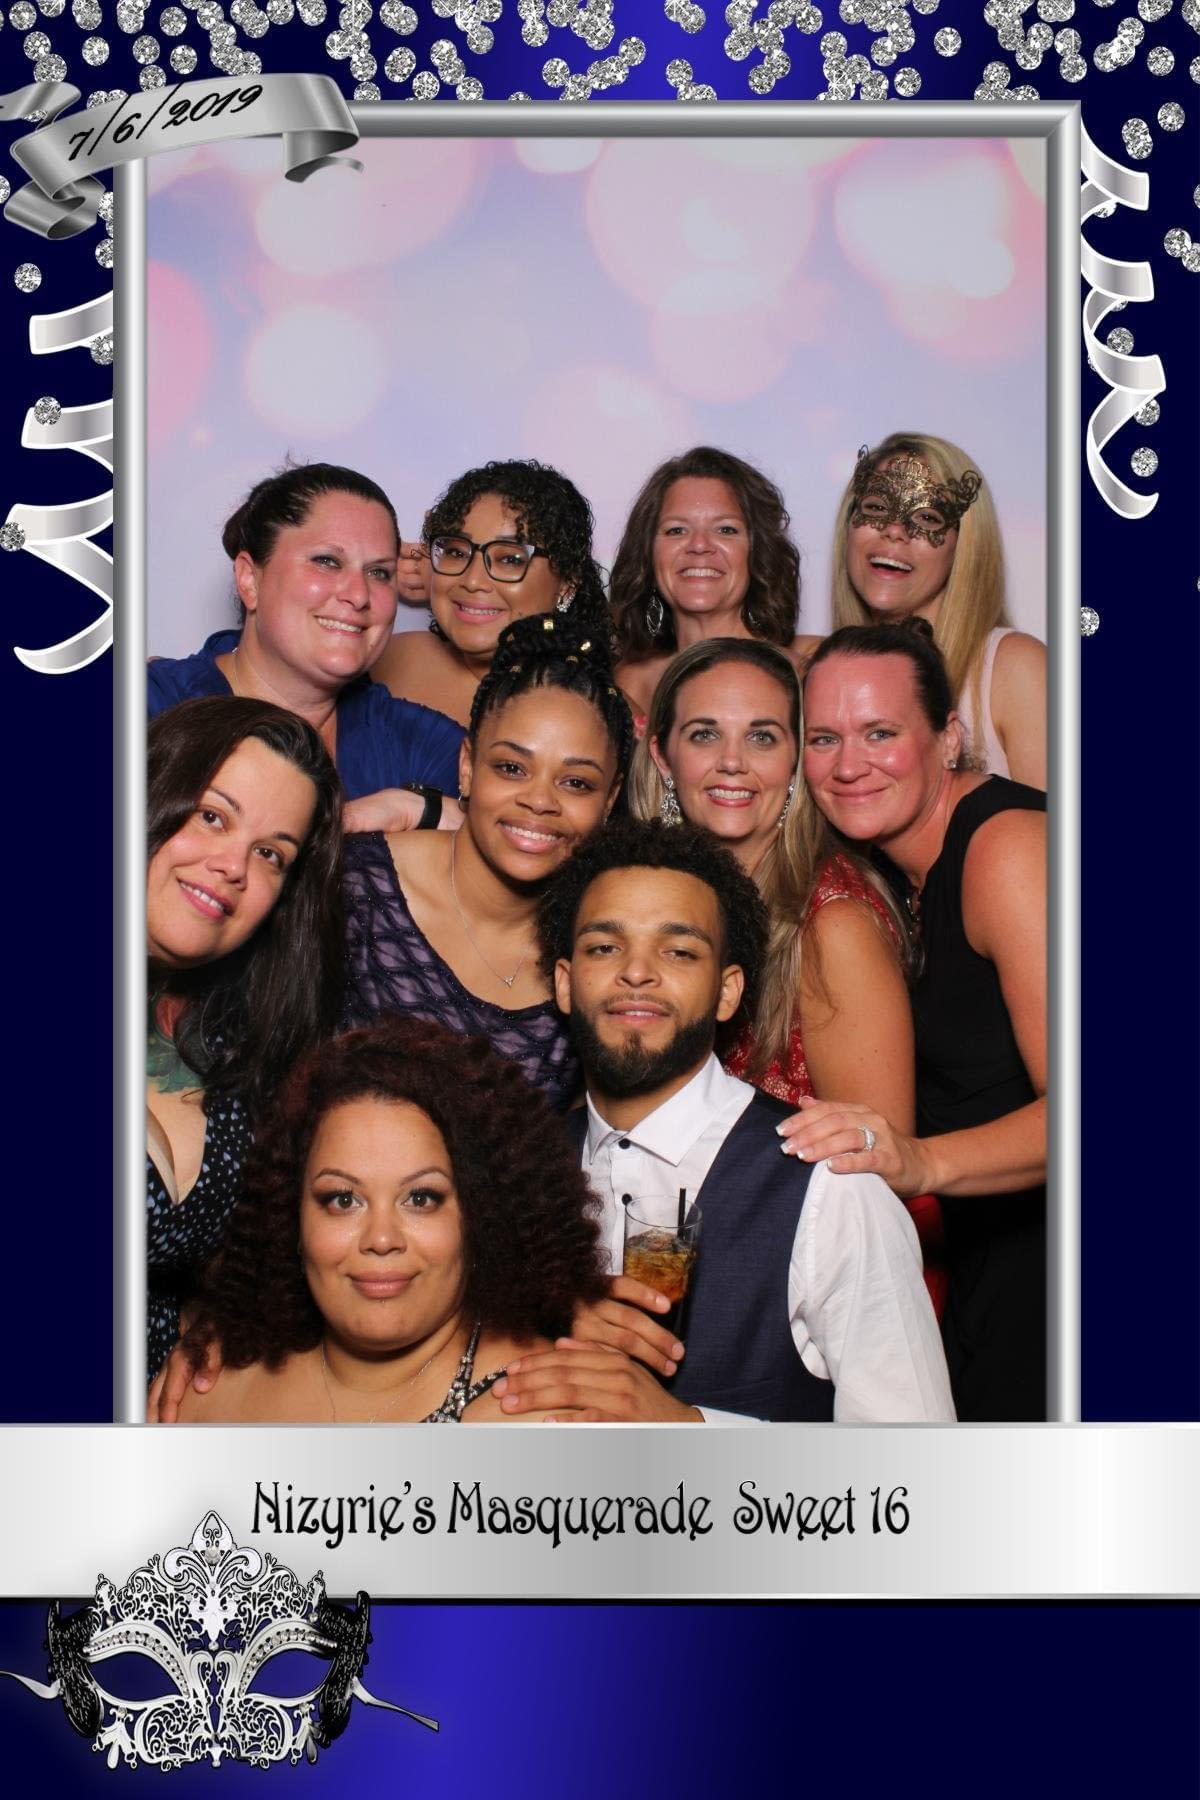 4x6 photo of a sweet 16 party